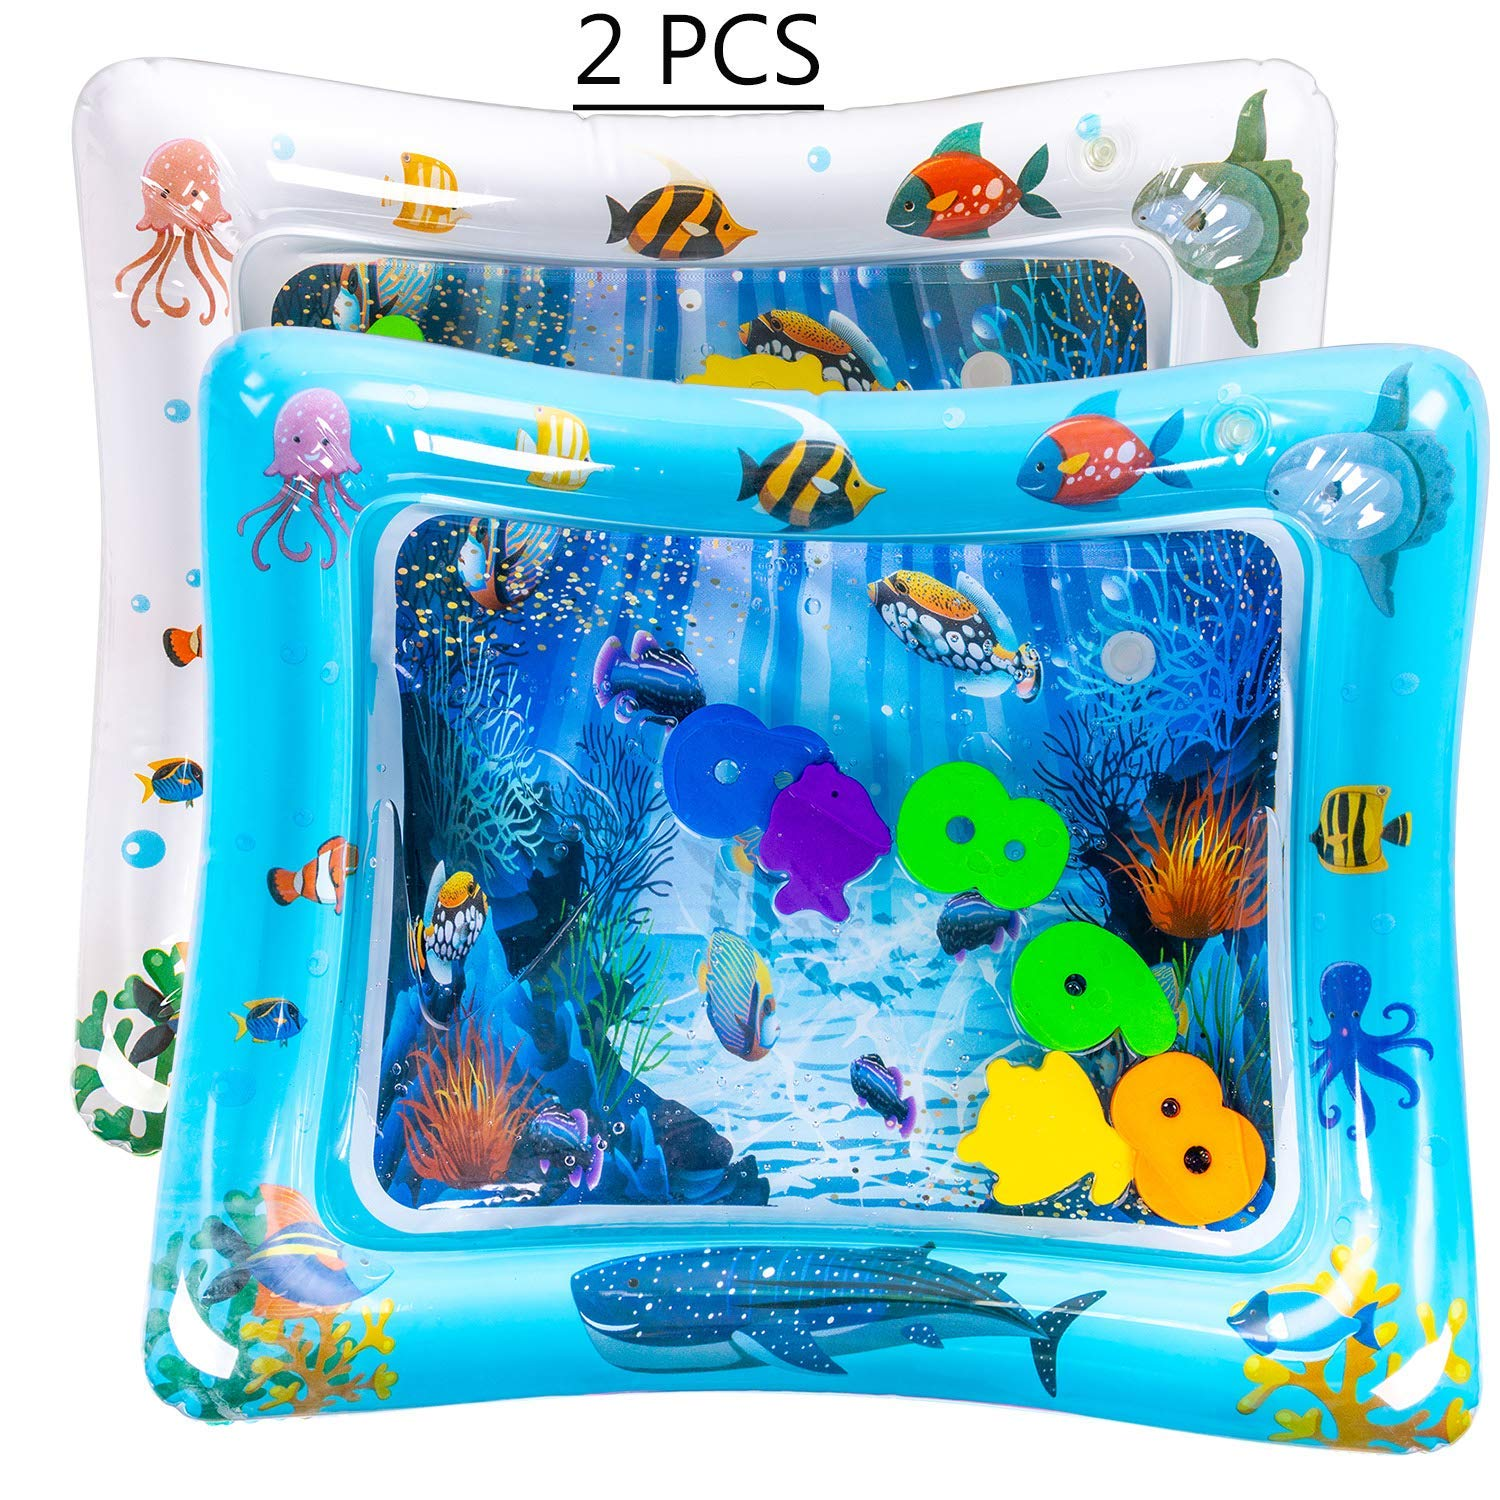 Tummy Time Inflatable Water Play Mat Playmat Sensory Activity Toy For Infant Toddlers Baby Girl/Boy 3 To 18 Months Old